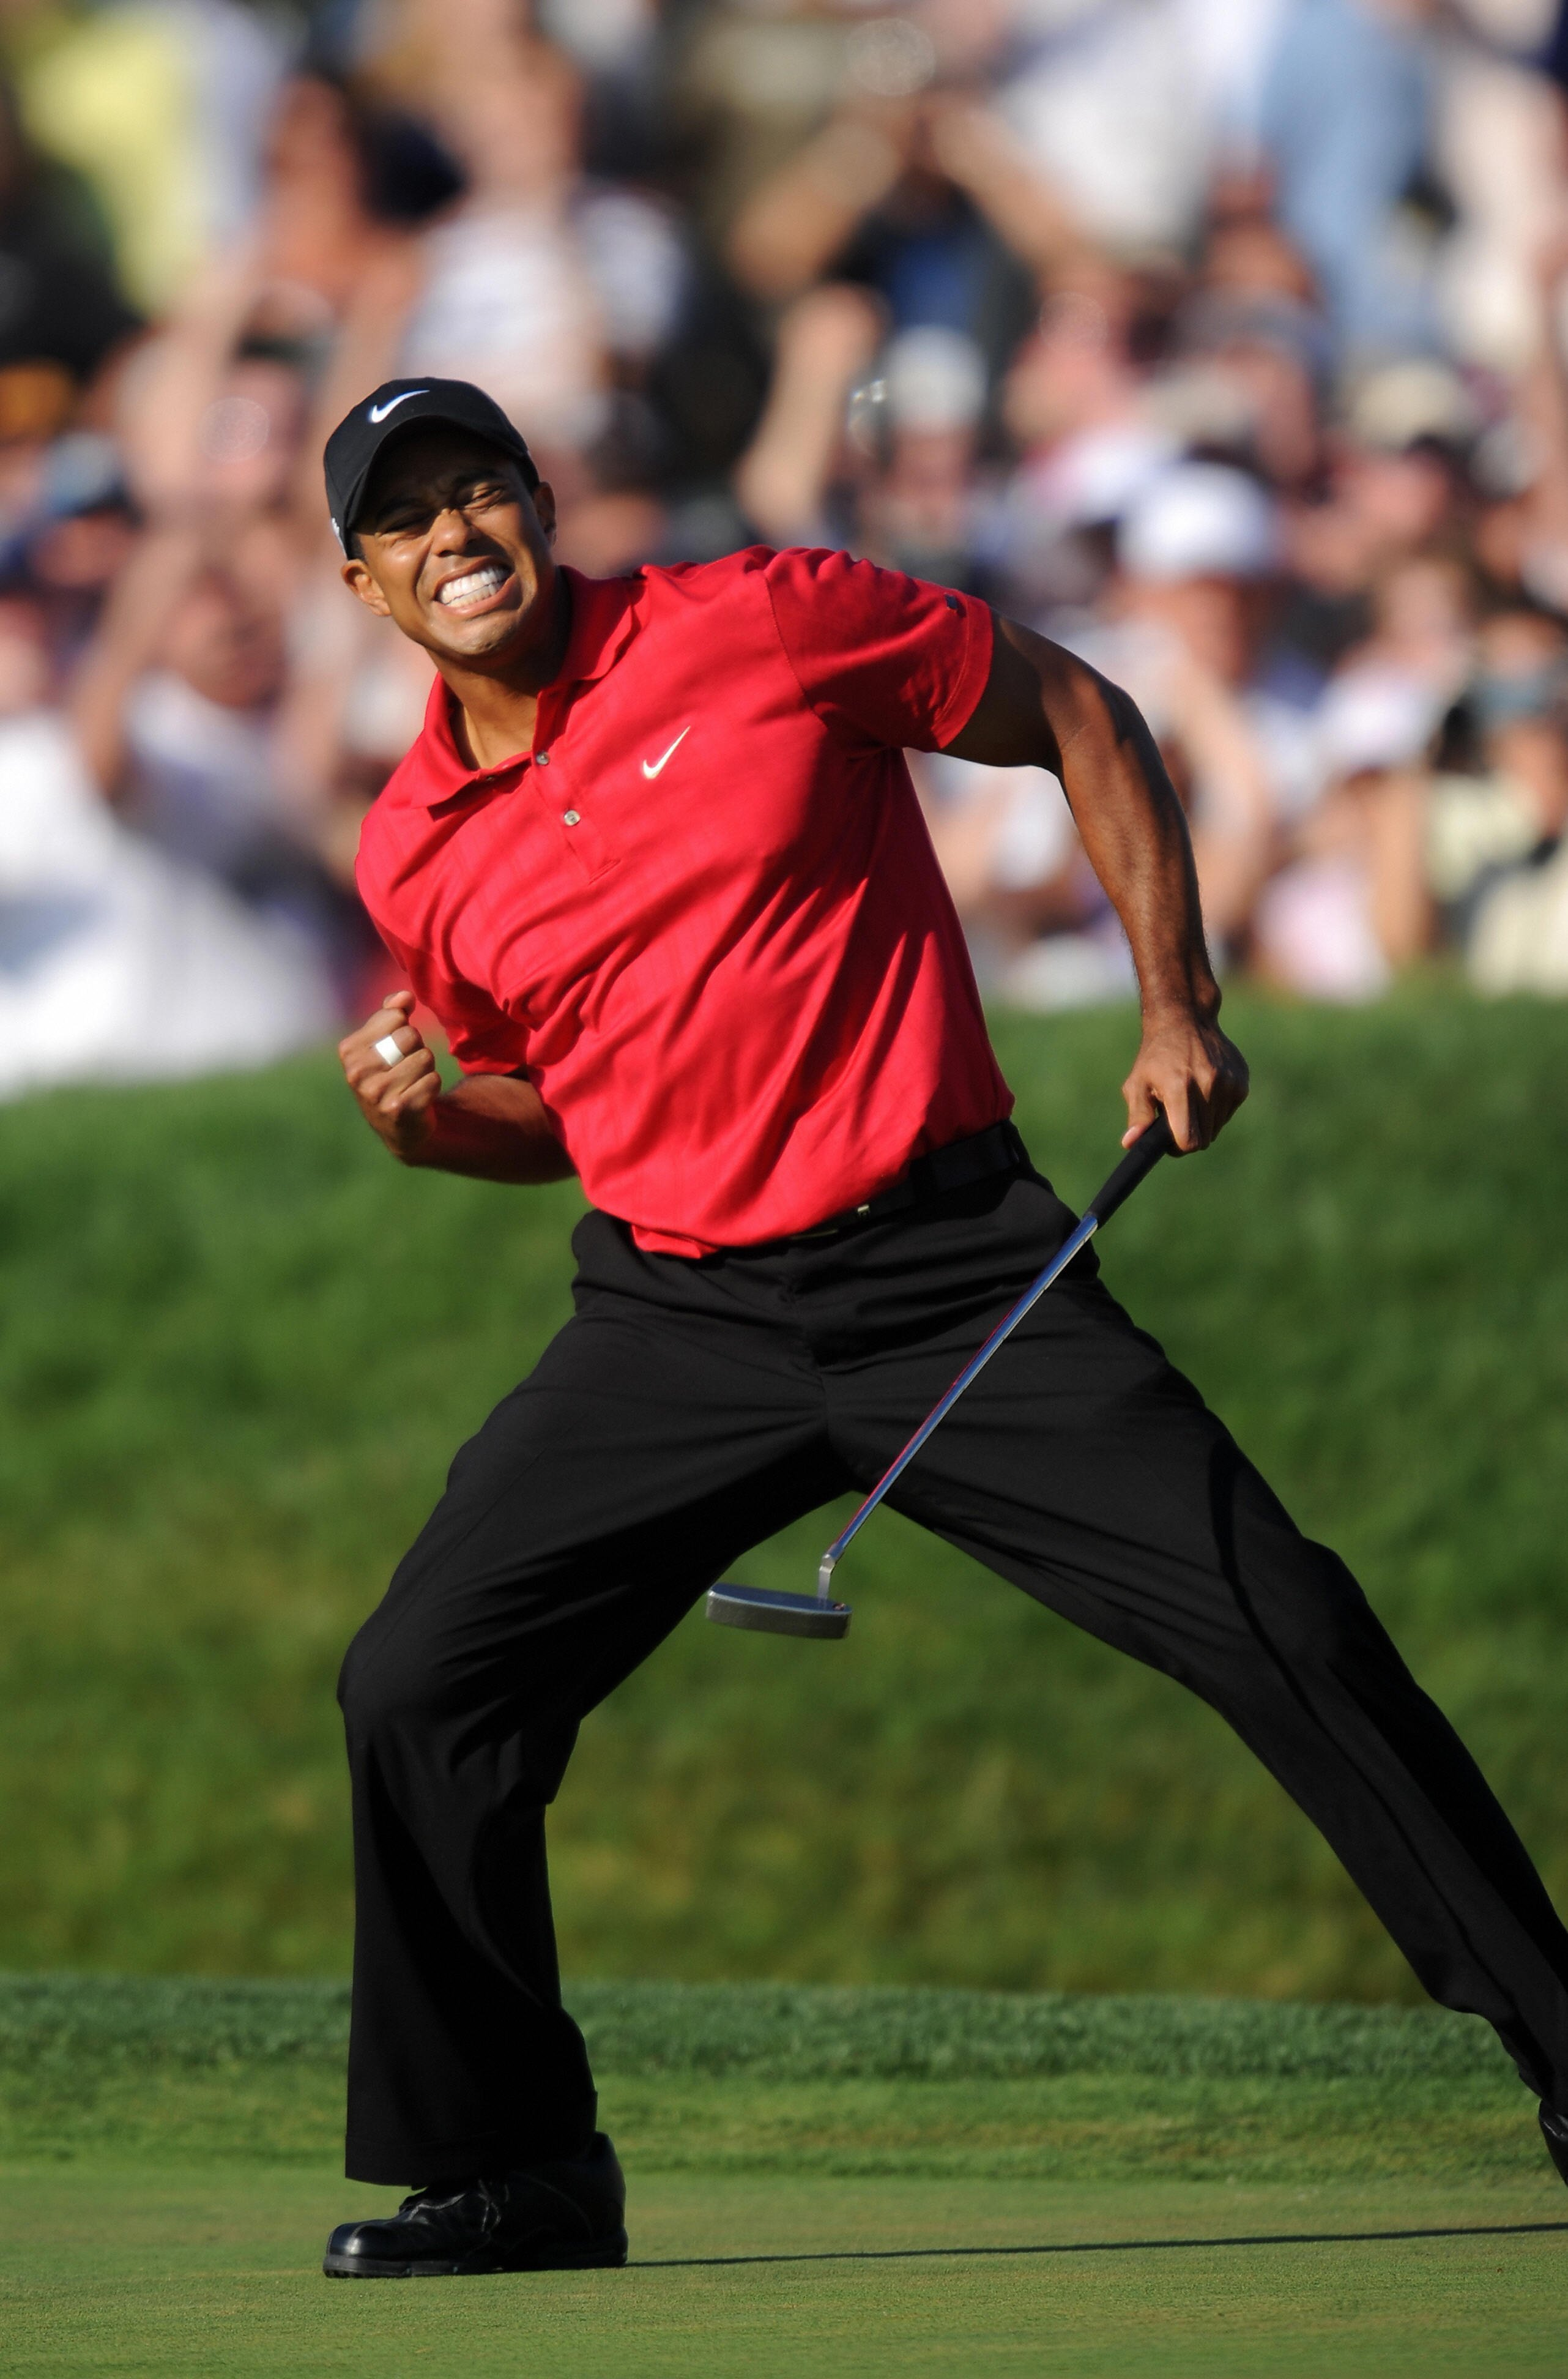 Tiger Woods defied injury to win a remarkable 2008 US Open in a playoff with Rocco Mediate.